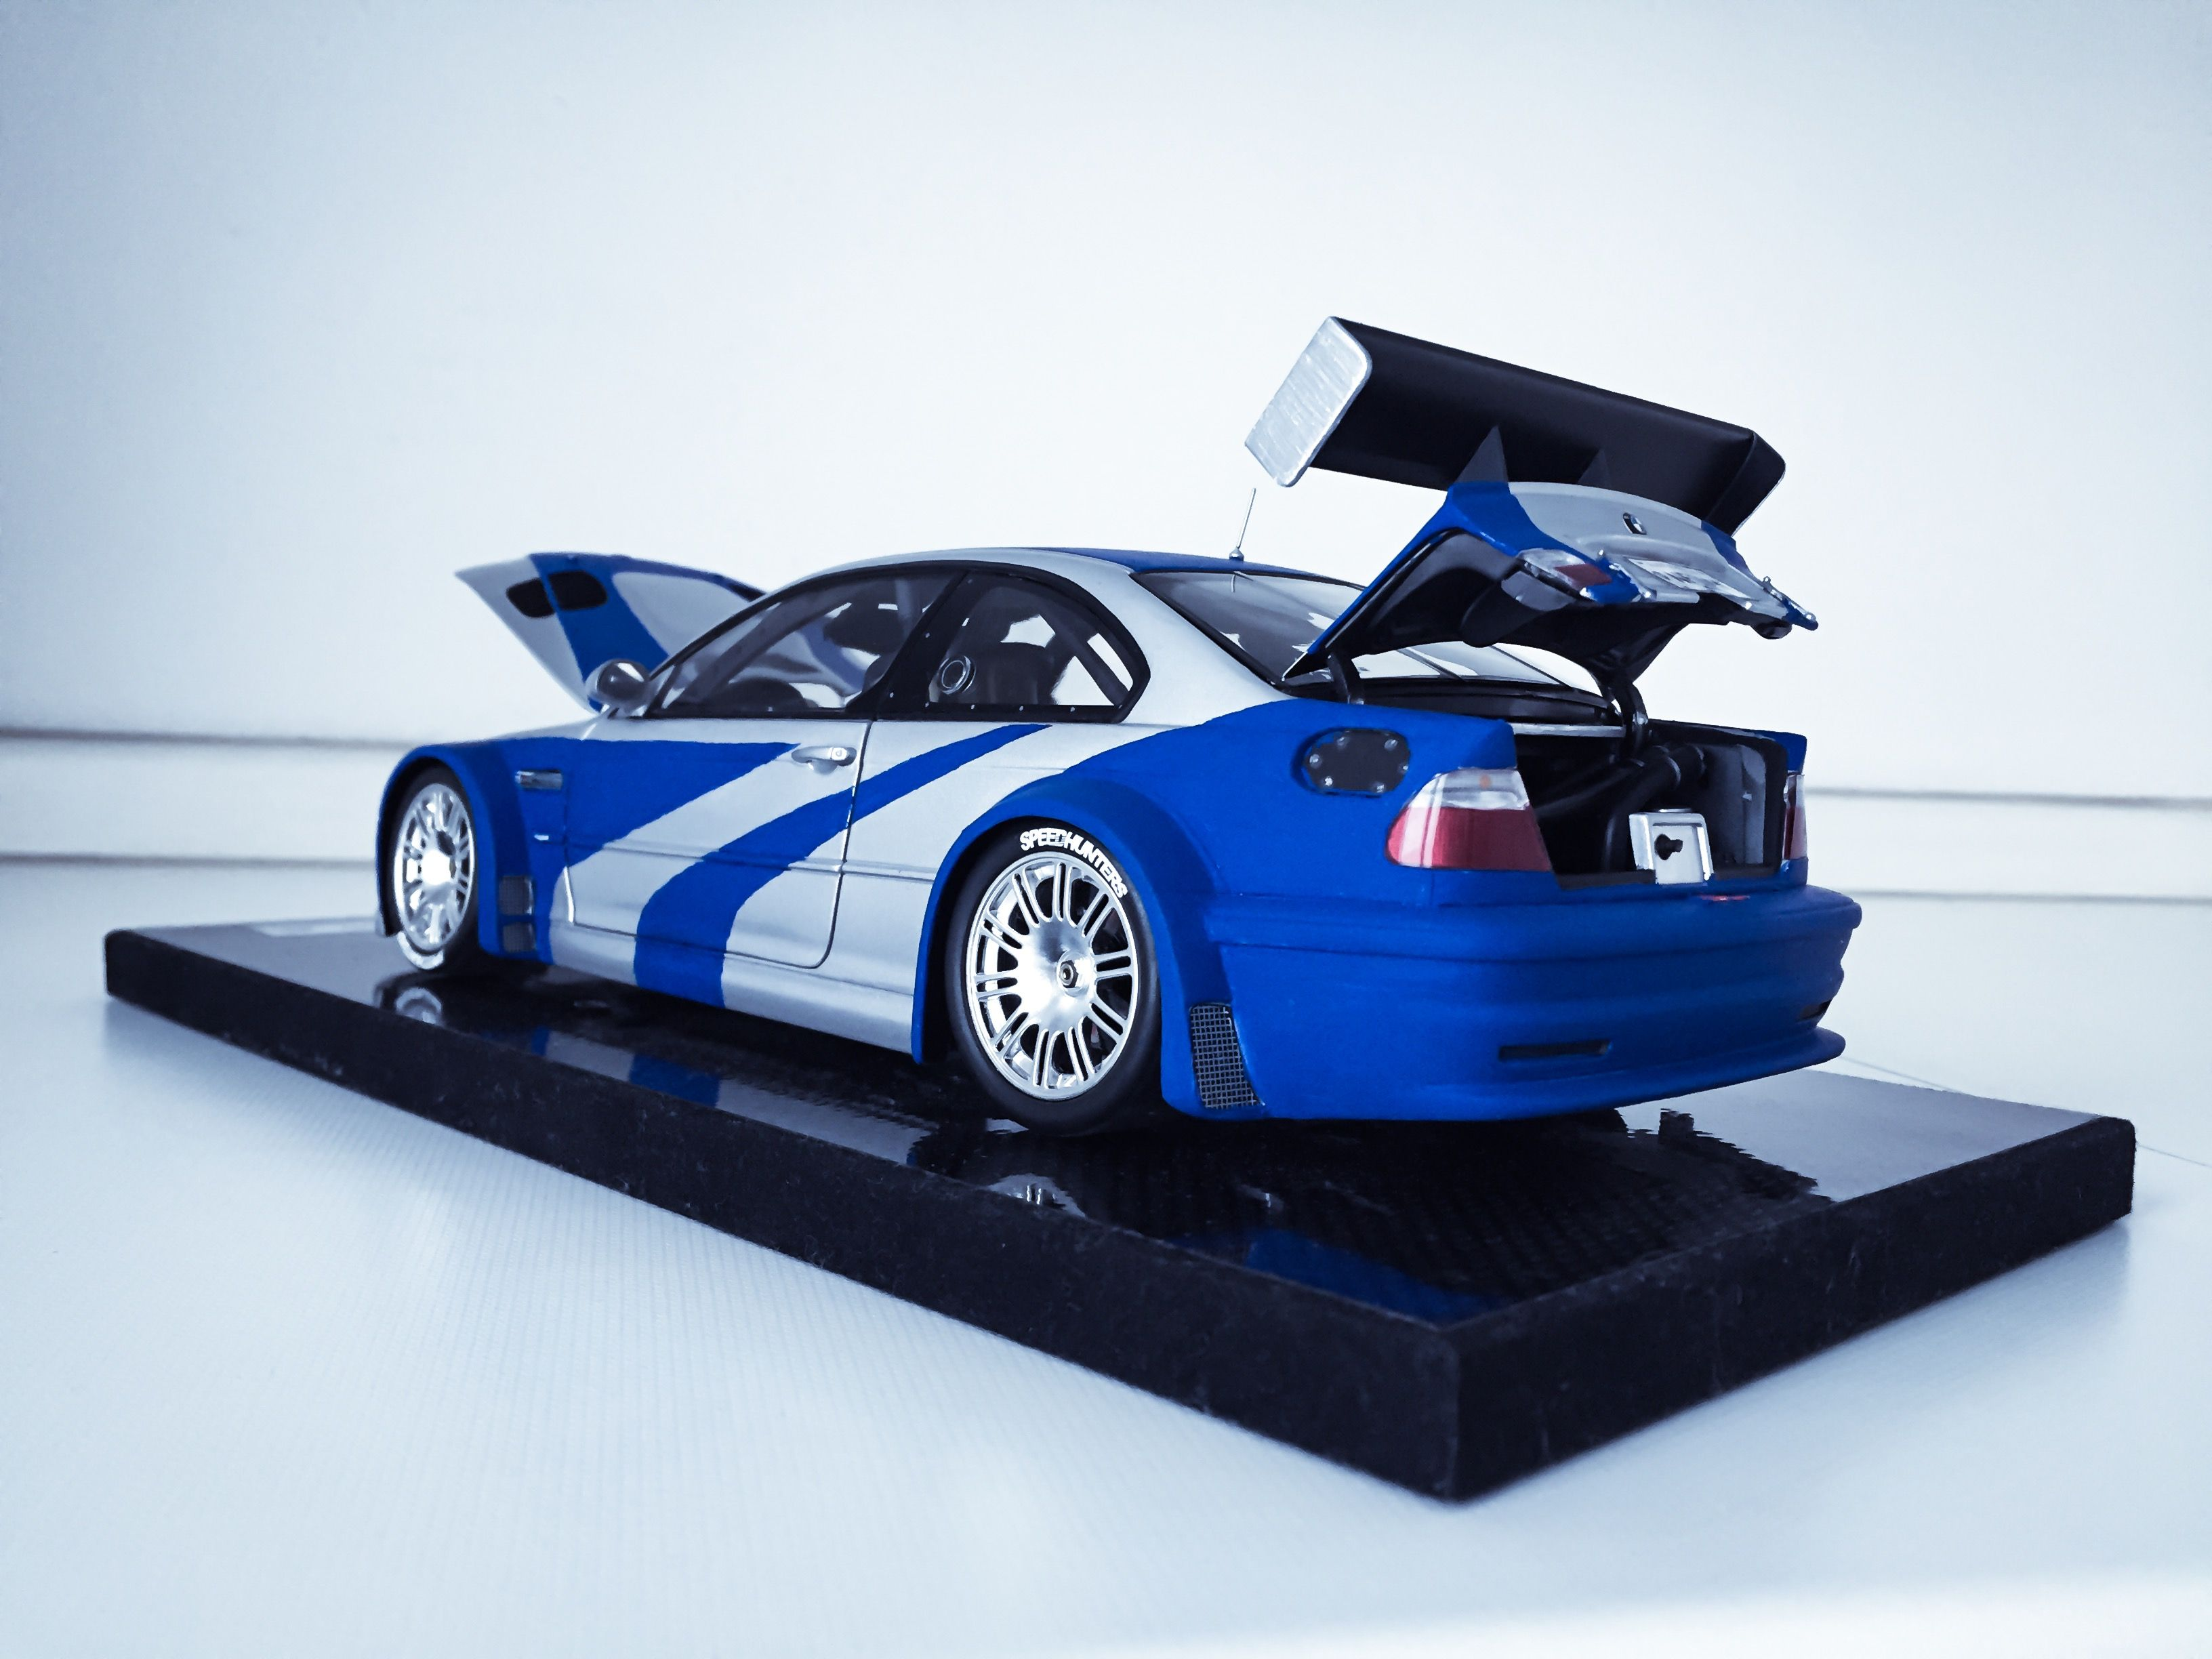 bmw m3 gtr need for speed most wanted bmw m3 gtr need for speed most wanted pinterest bmw. Black Bedroom Furniture Sets. Home Design Ideas